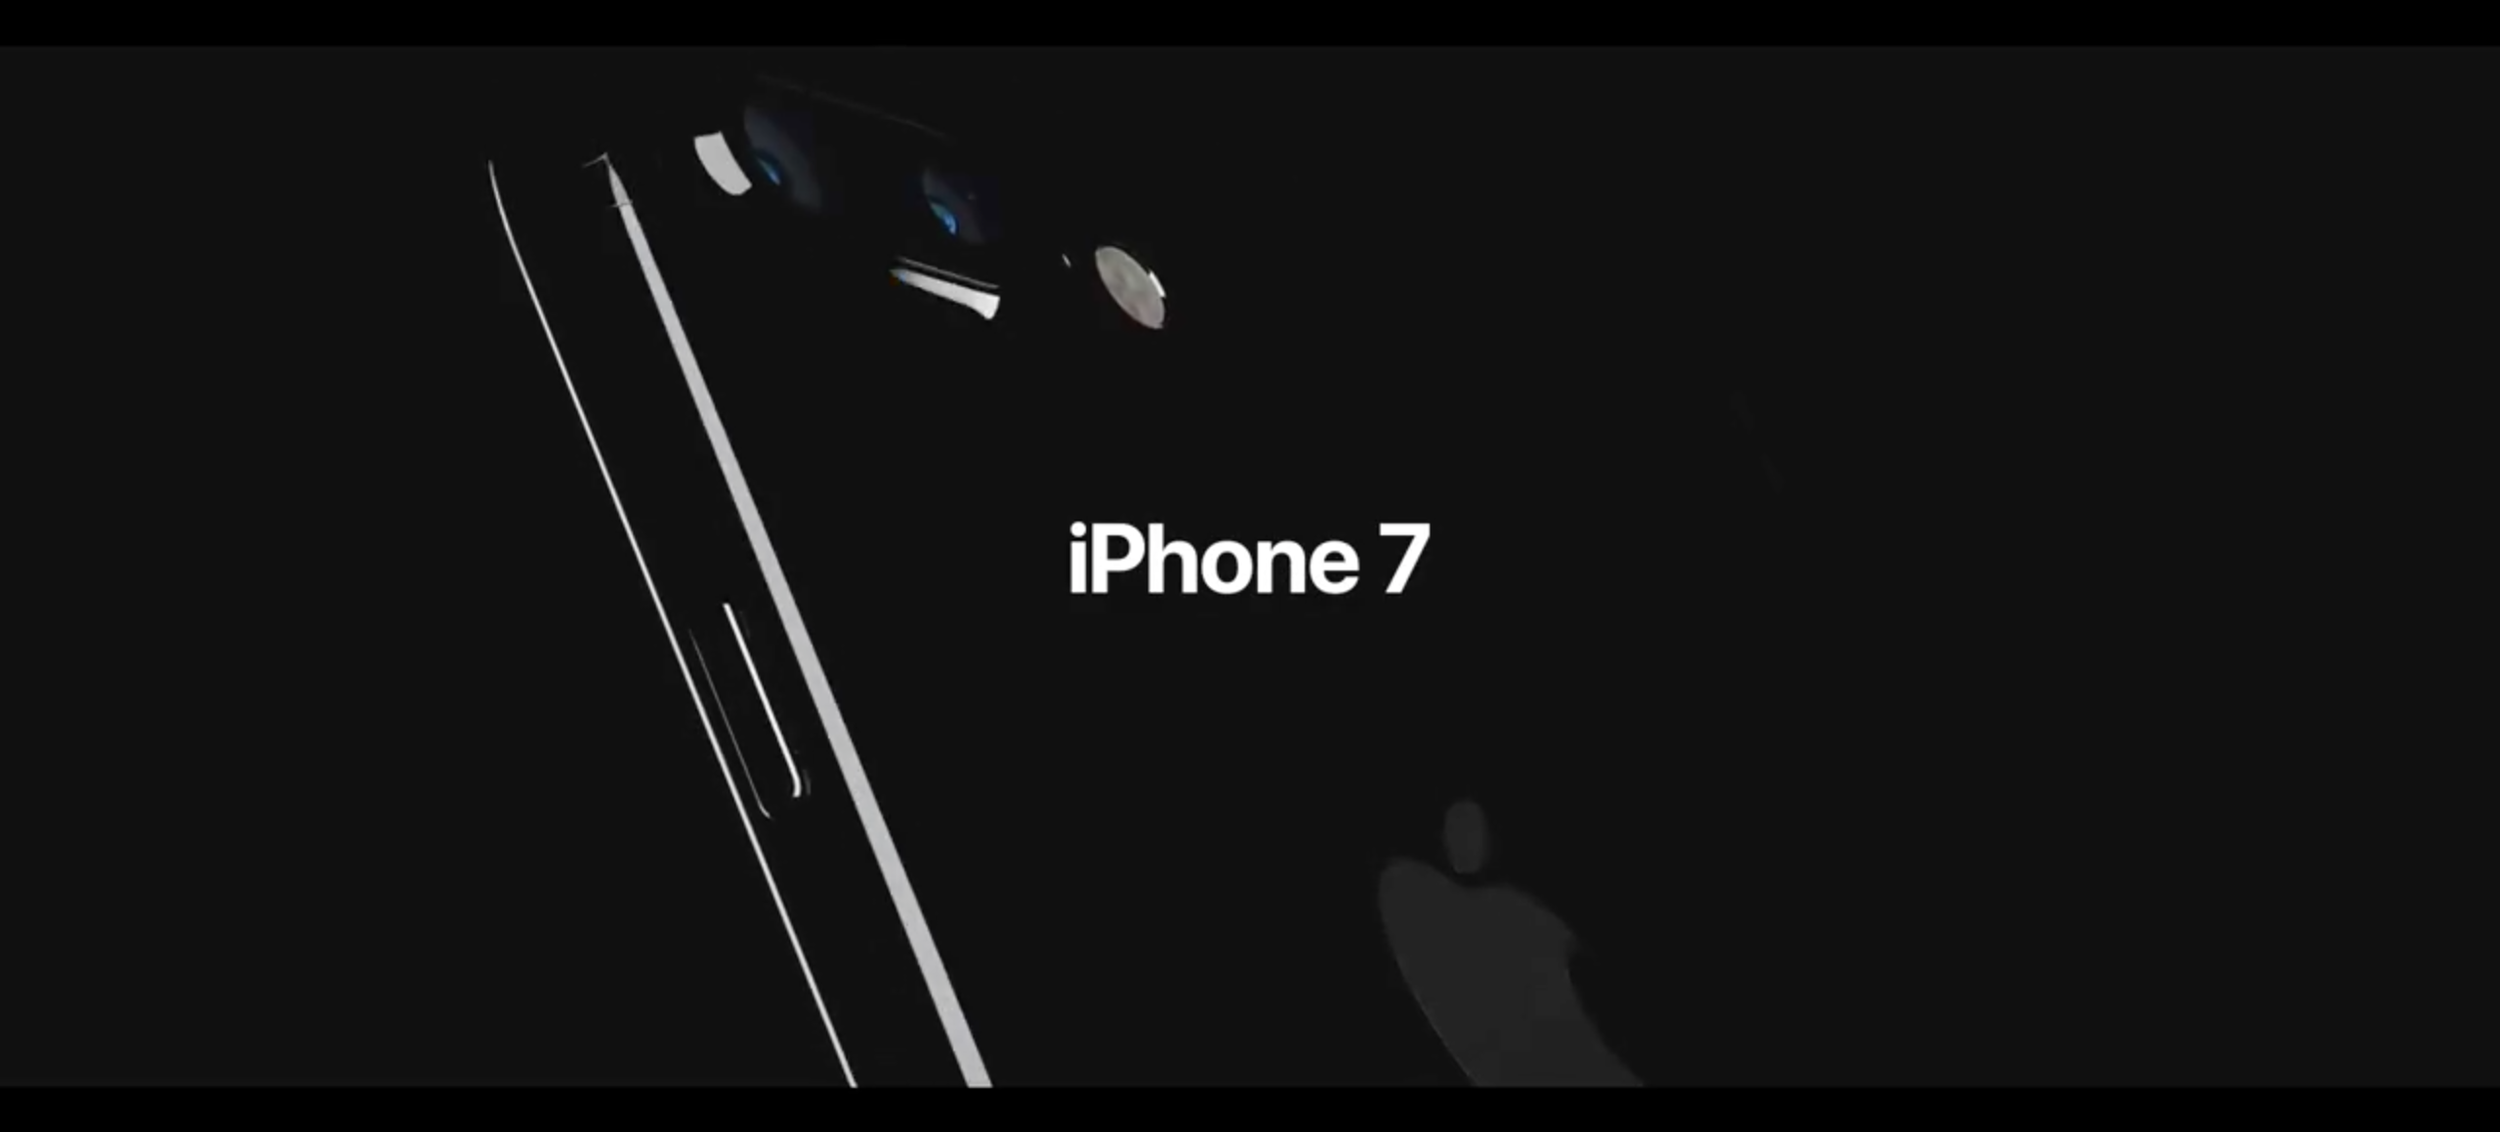 I did the original music for the latest Apple iPhone 7 ad campaign. Click on the photo to see the ad.